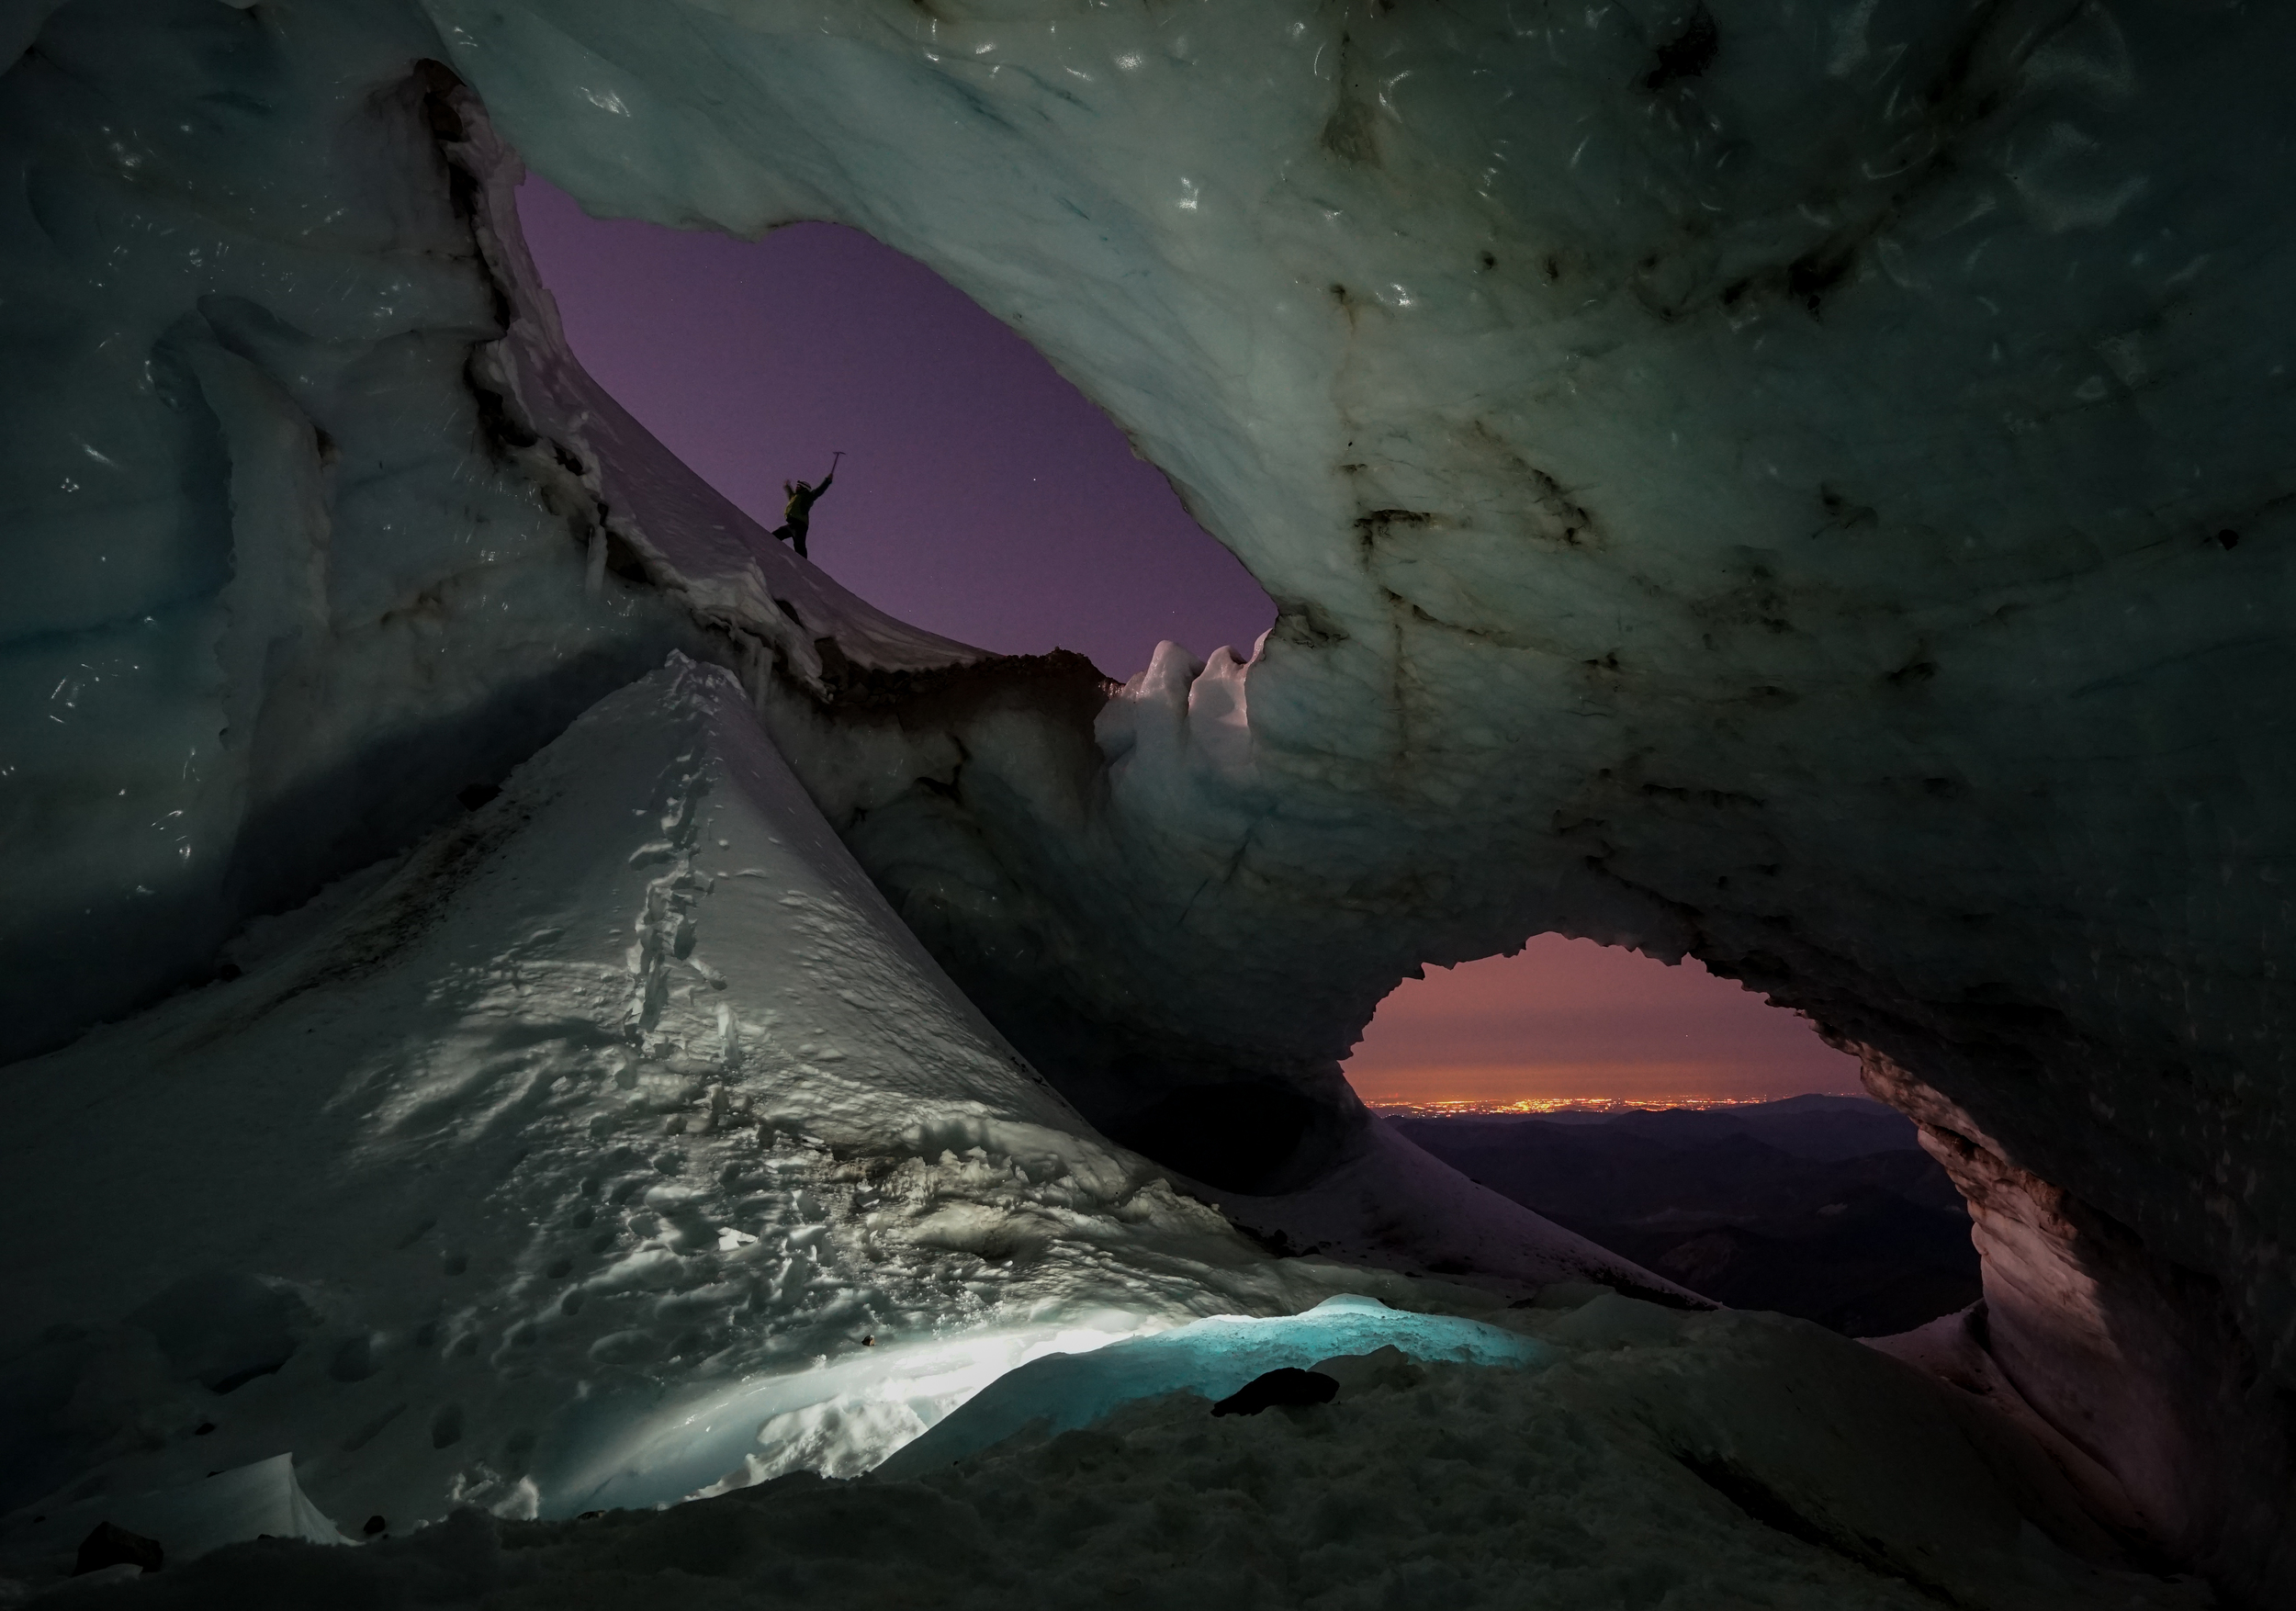 Mt Hood, Sandy Glacier Caves, Pure Imagination Cave. 2015. Available without person                  *Photo available without the person.